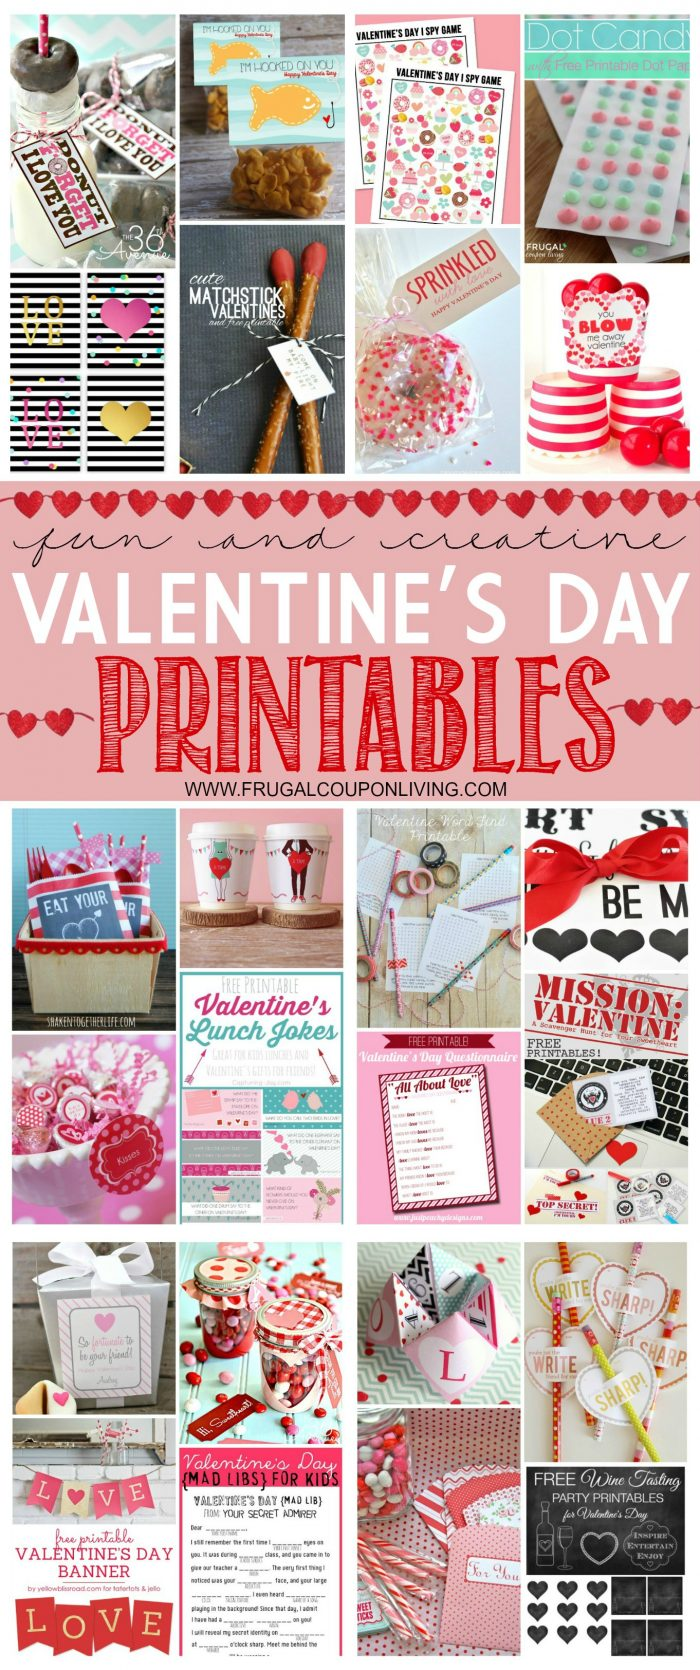 Valentines-day-printables-frugal-coupon-living